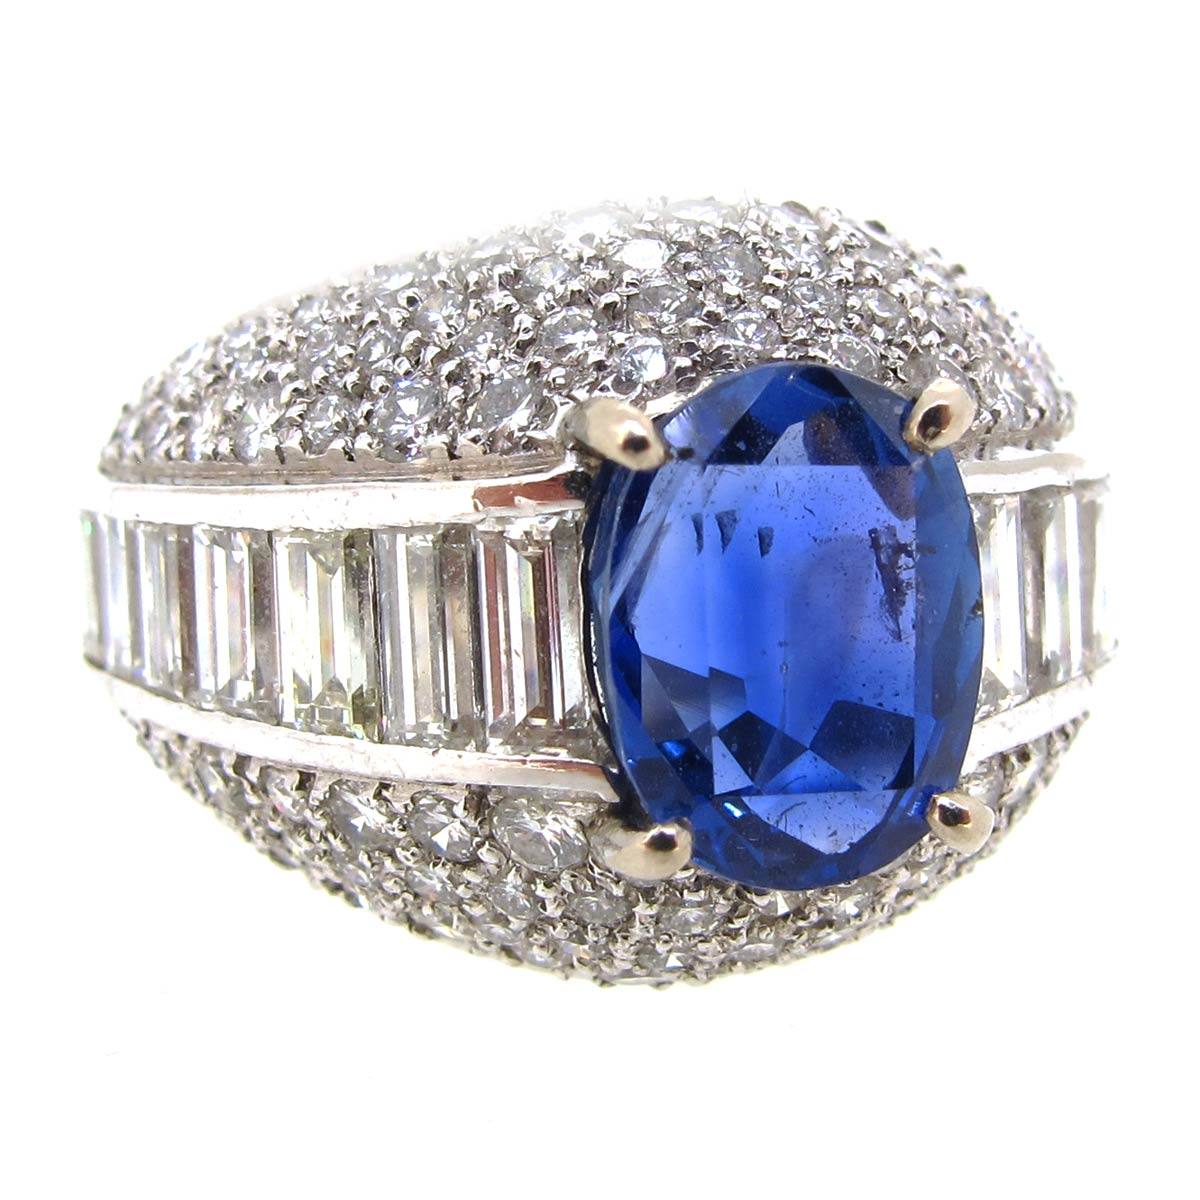 Sapphire & Diamond Cocktail Ring